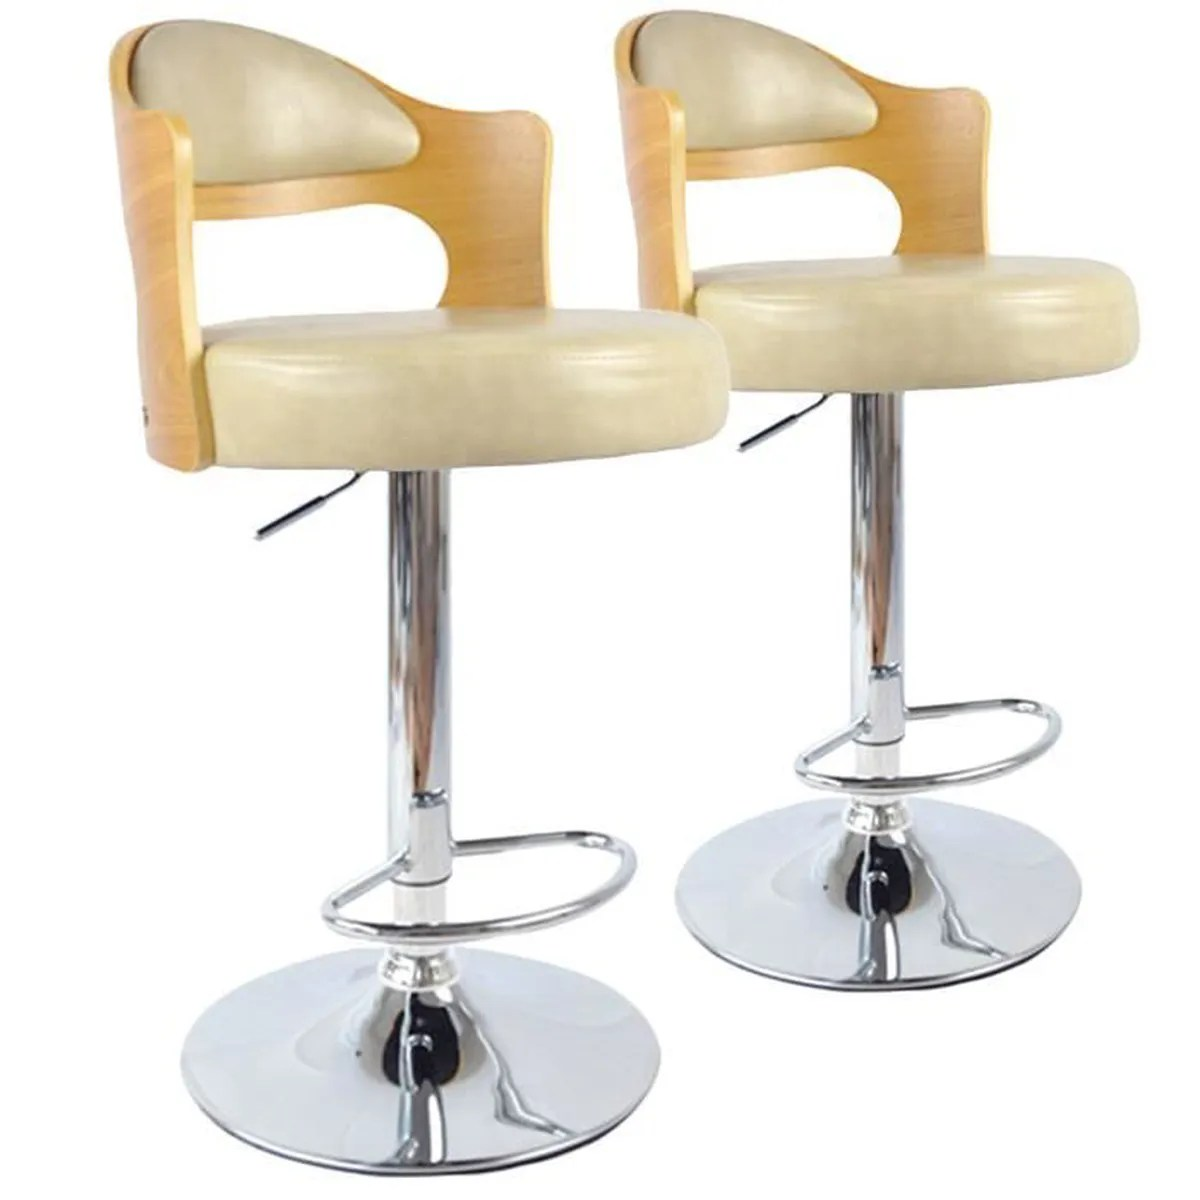 Tabourets De Bar Réglables Rubens Tabouret De Bar Lot De 2 Chaises De Bar Ruben Chene Clair